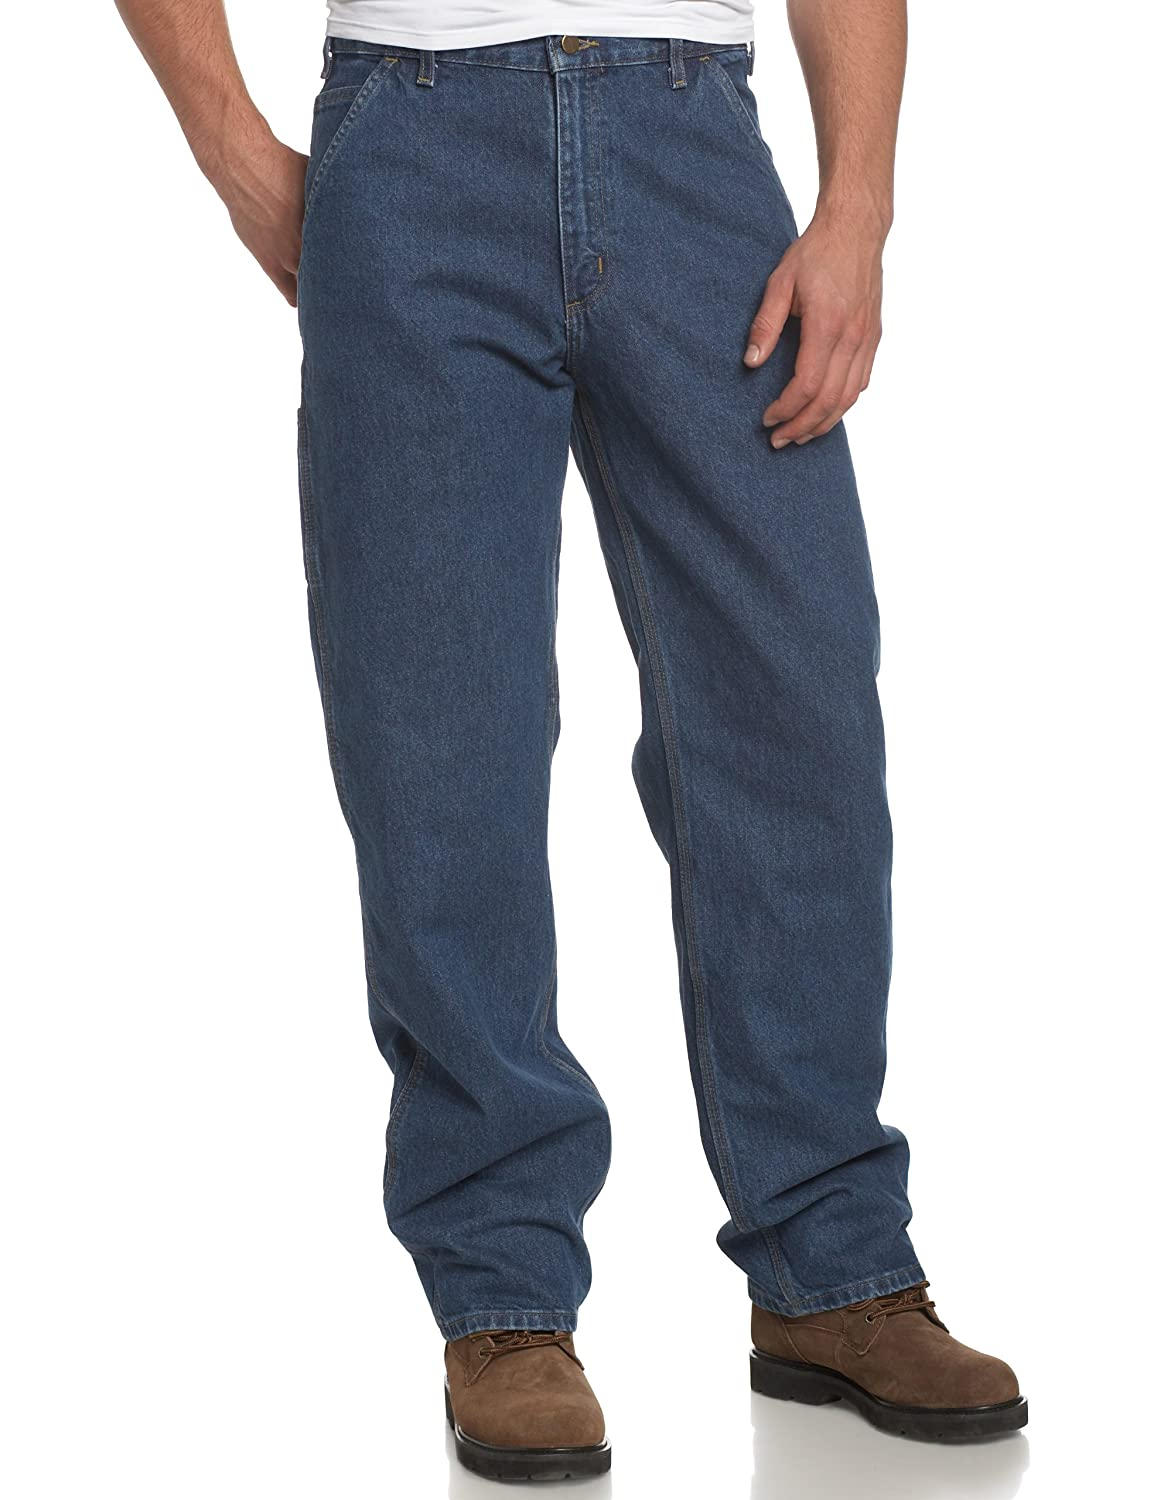 Carhartt Men's Original Fit Signature Denim Dungaree B237